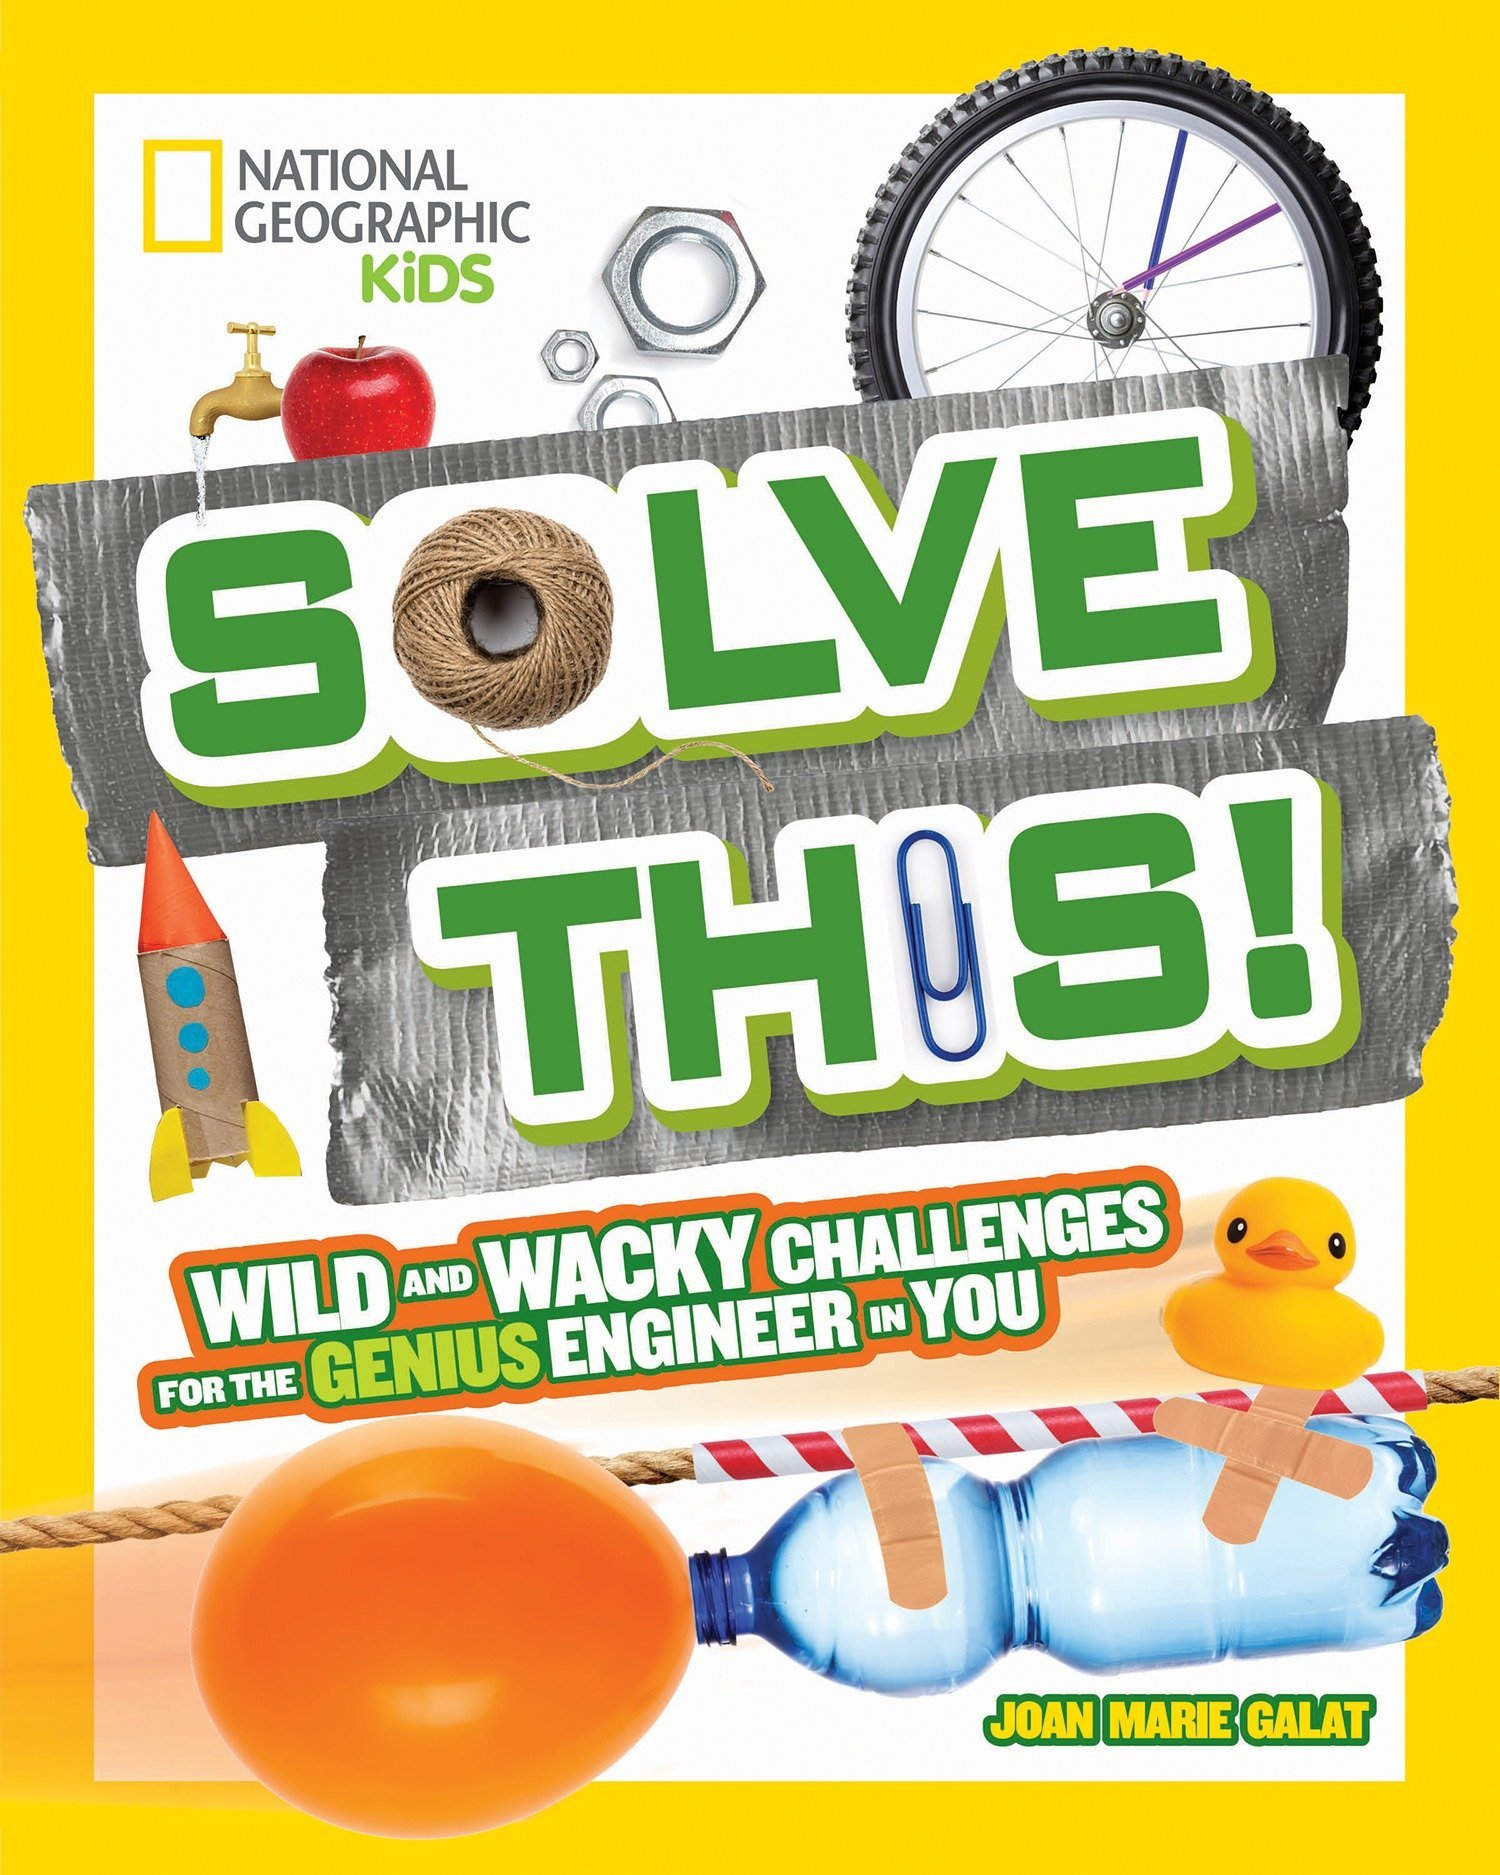 Solve This!: Wild and Wacky Challenges for the Genius Engineer in You (National Geographic Kids)